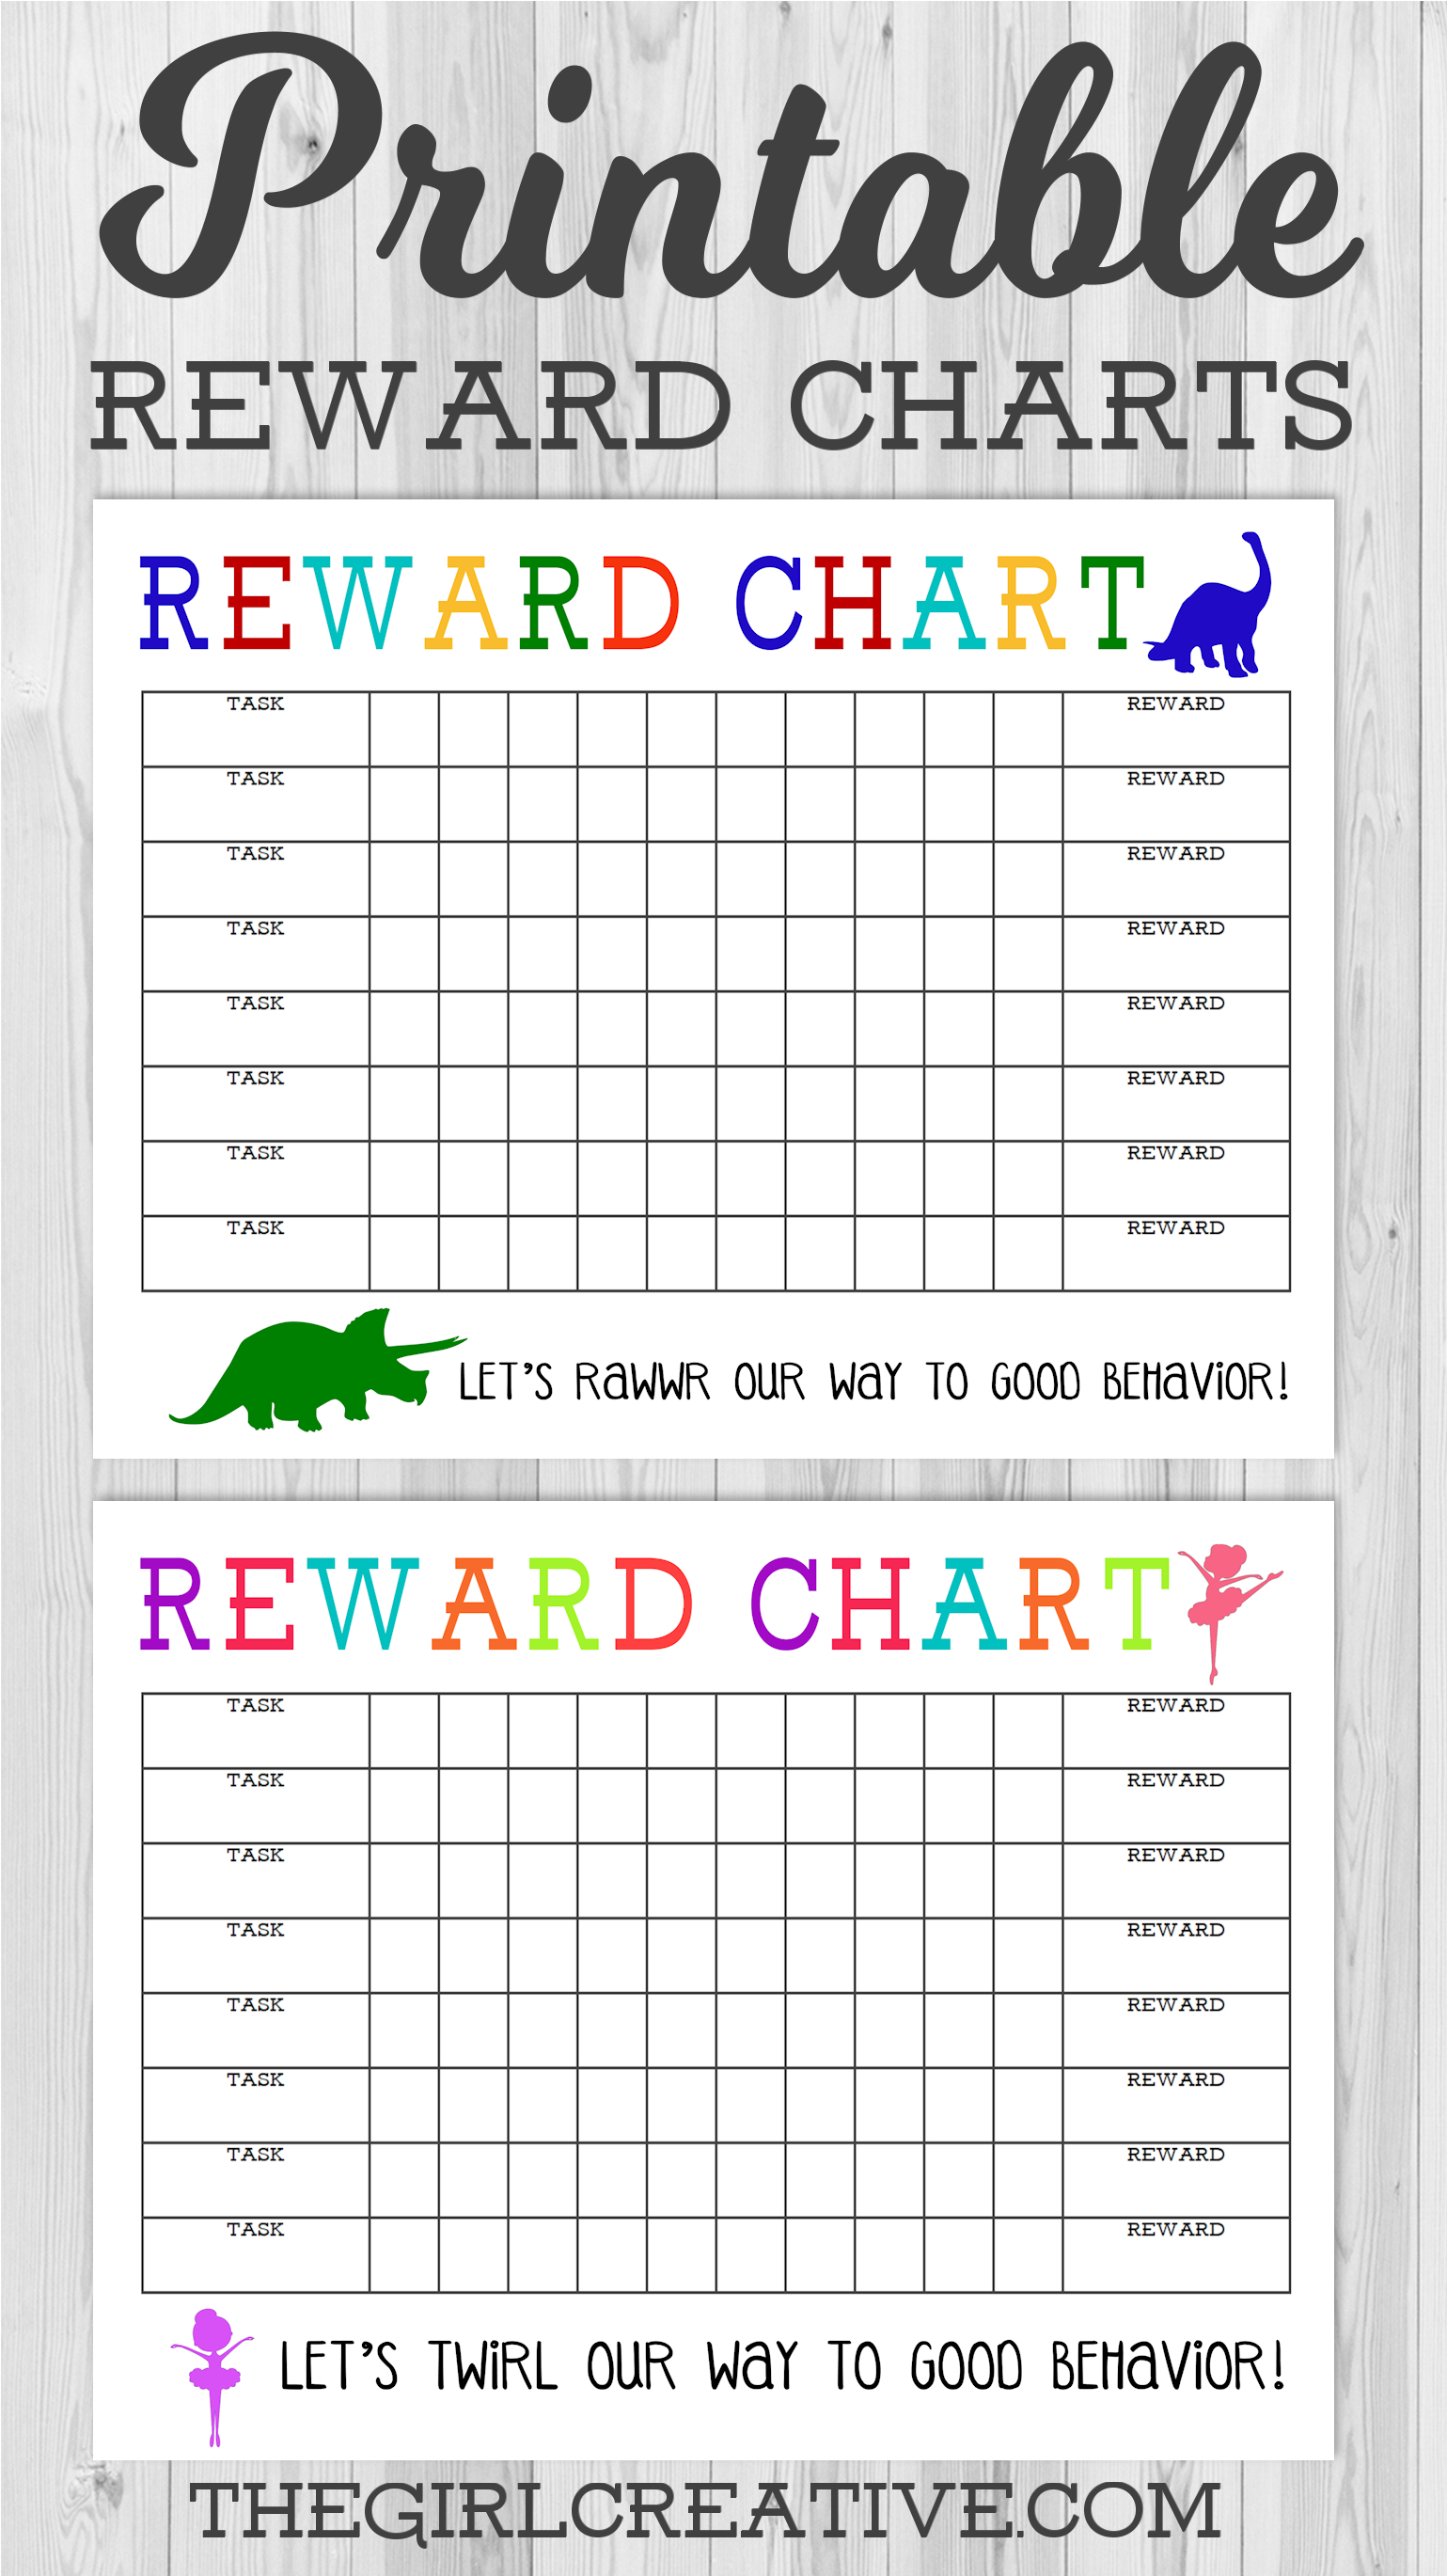 Printable Reward Chart - The Girl Creative - Free Printable Reward Charts For Teenagers